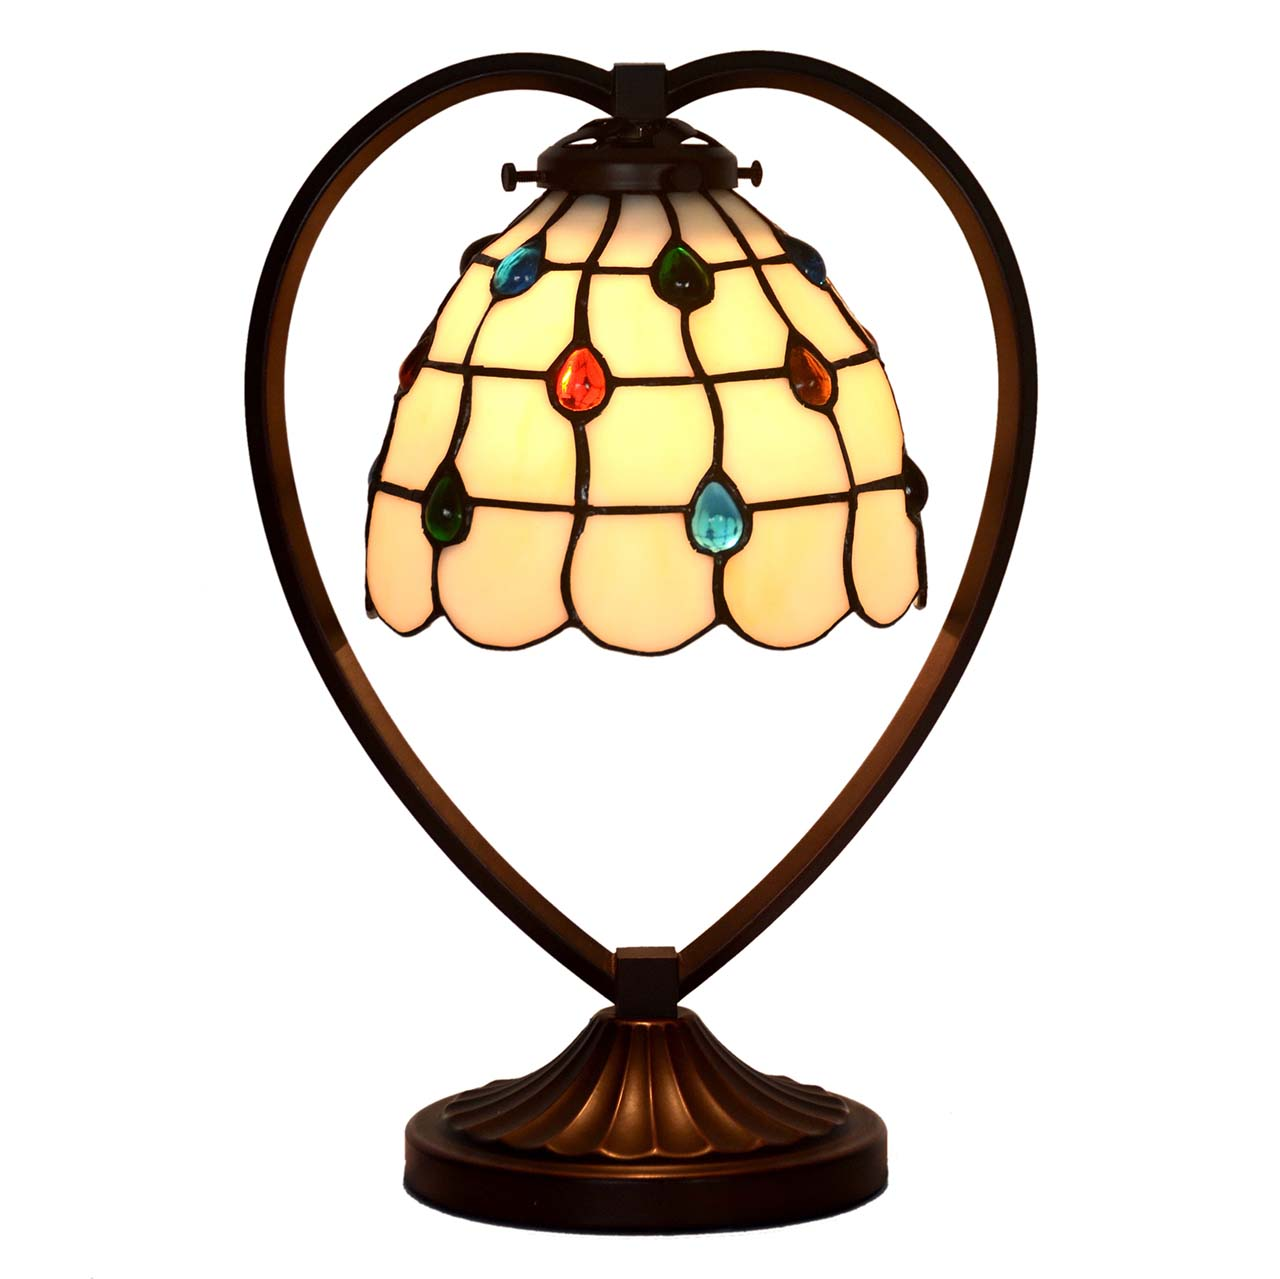 Bieye L10512 10 Inches Jewels Tiffany Style Stained Glass Table Lamp